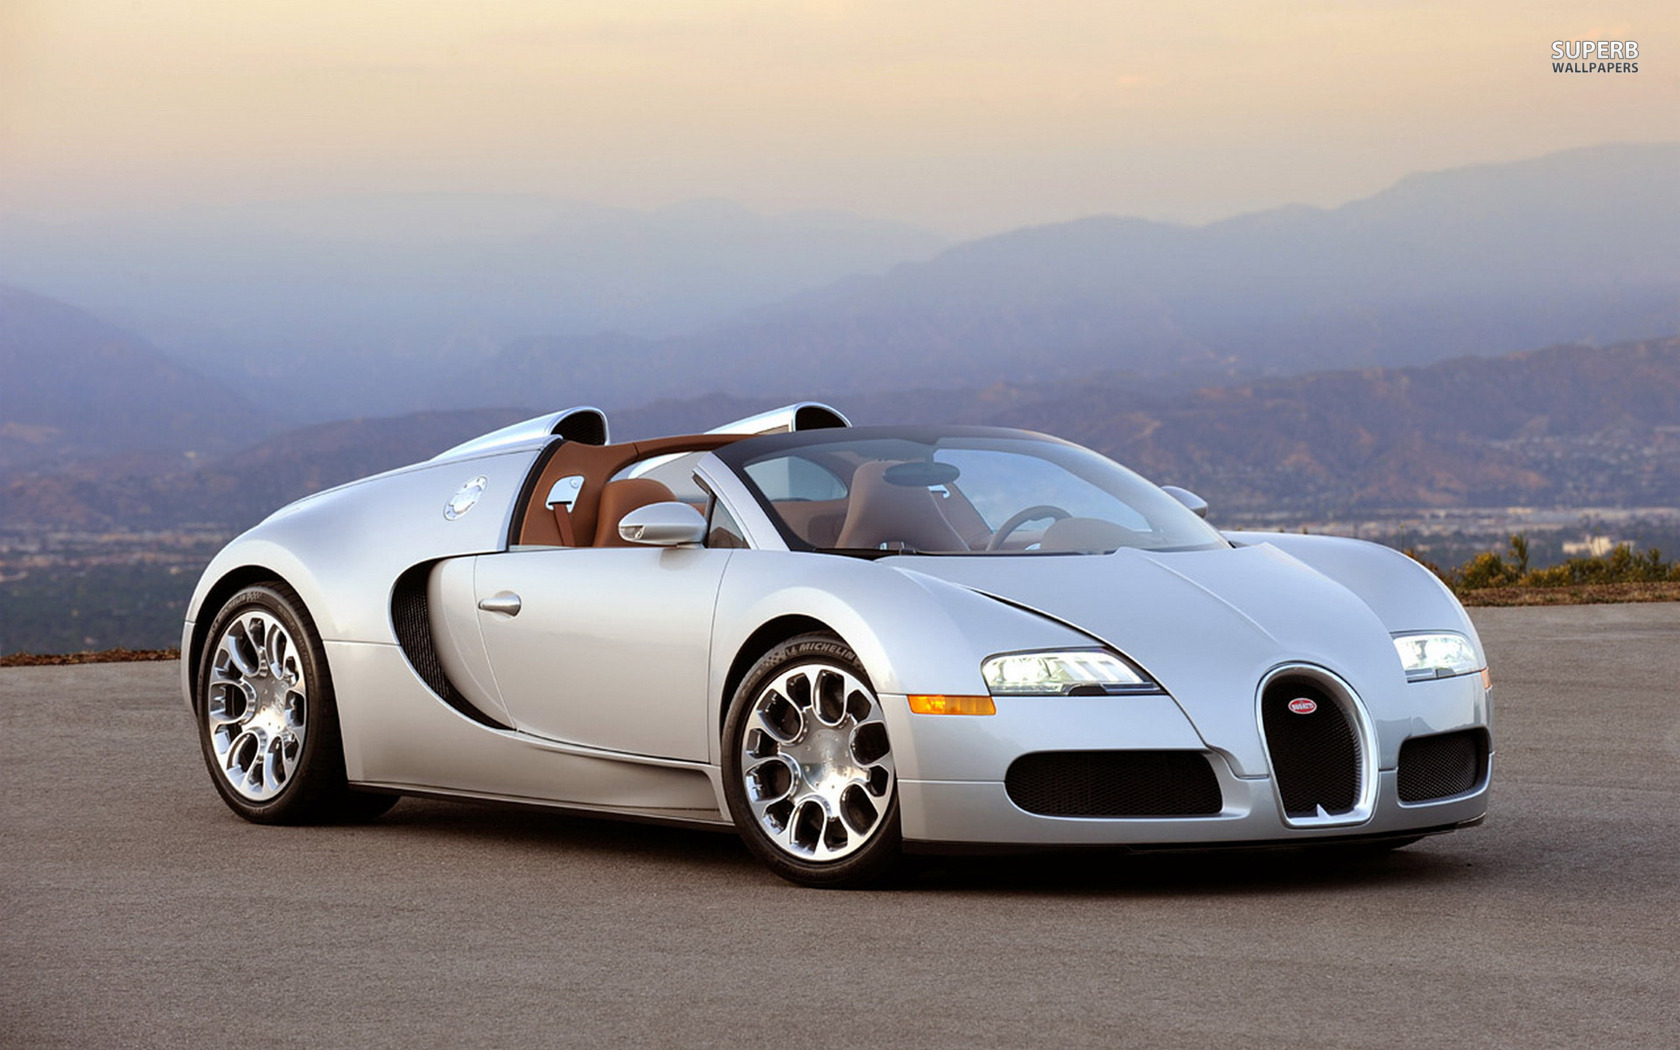 Pictures of bugatti veyron eb 16.4 2008